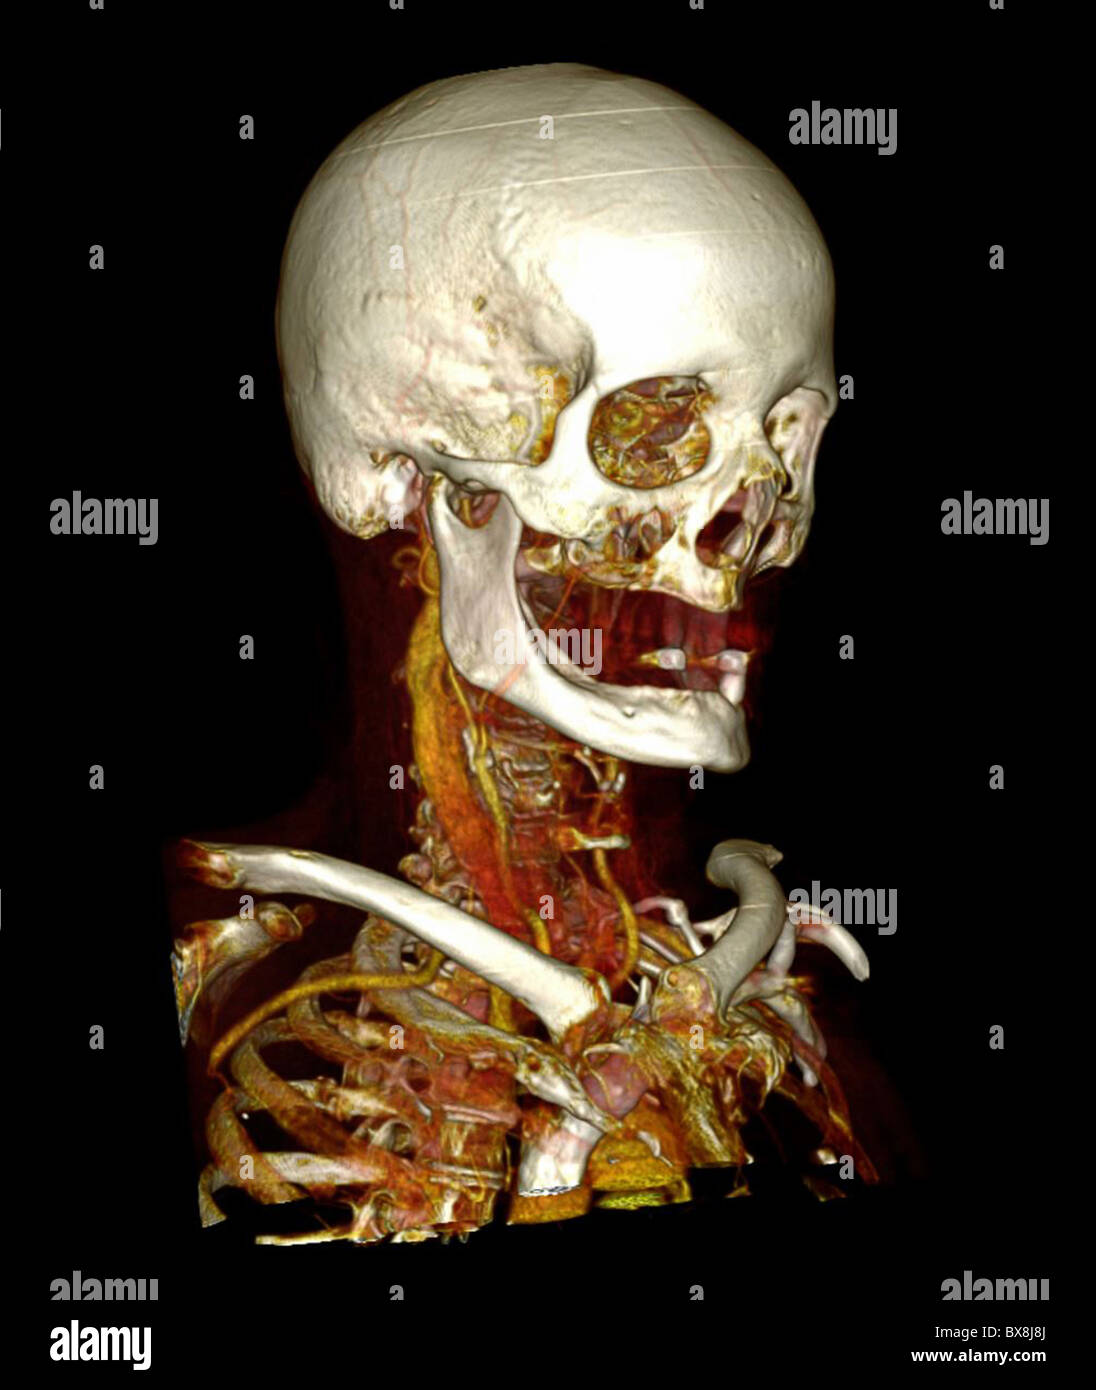 3D CT scan of the head of an elderly man Stock Photo: 33381394 - Alamy